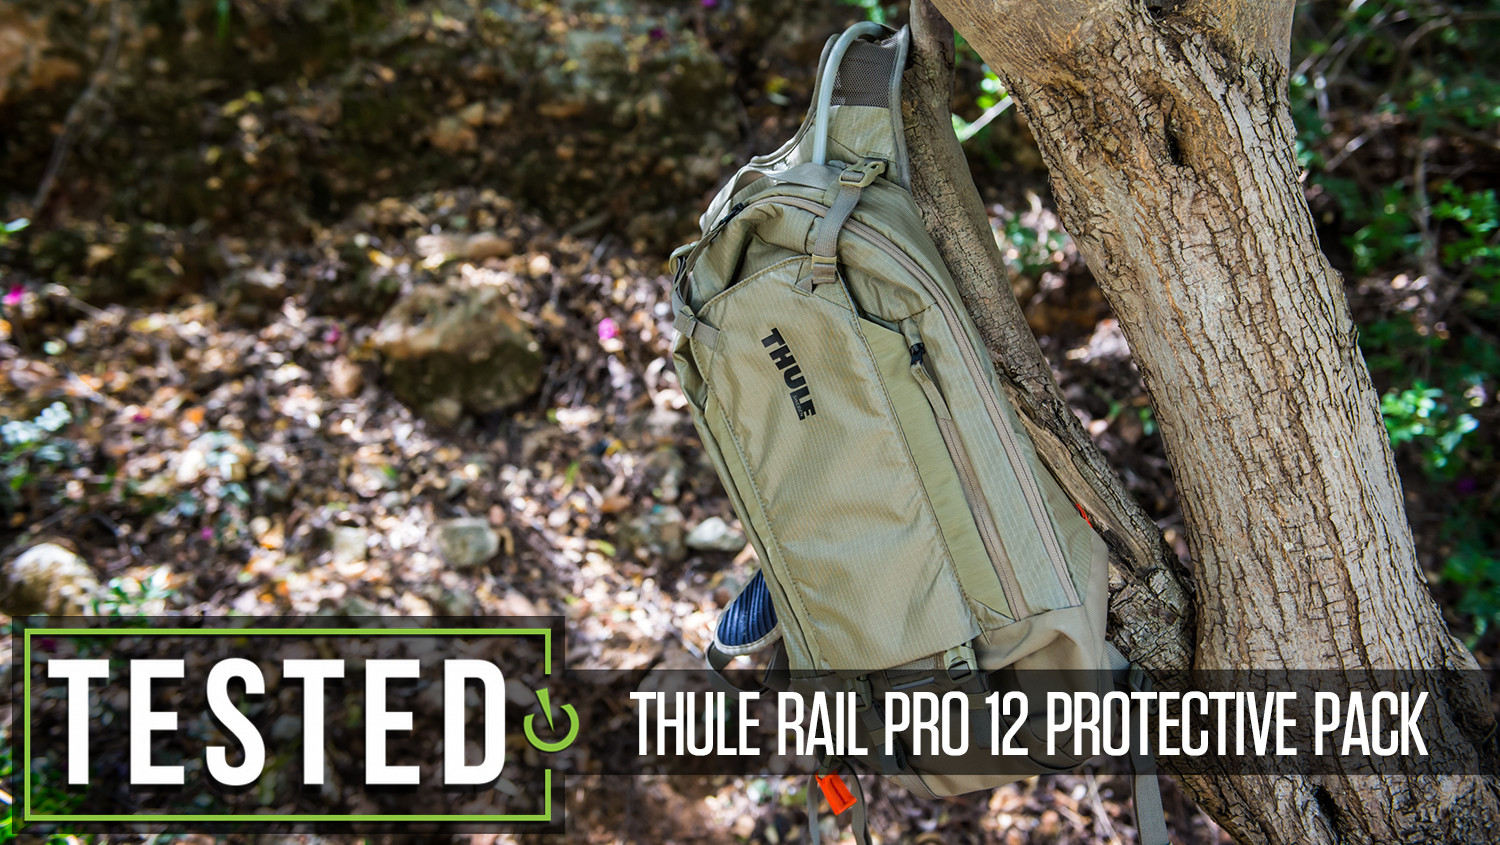 Tested: Thule Rail Pro 12 Protective Hydration Pack